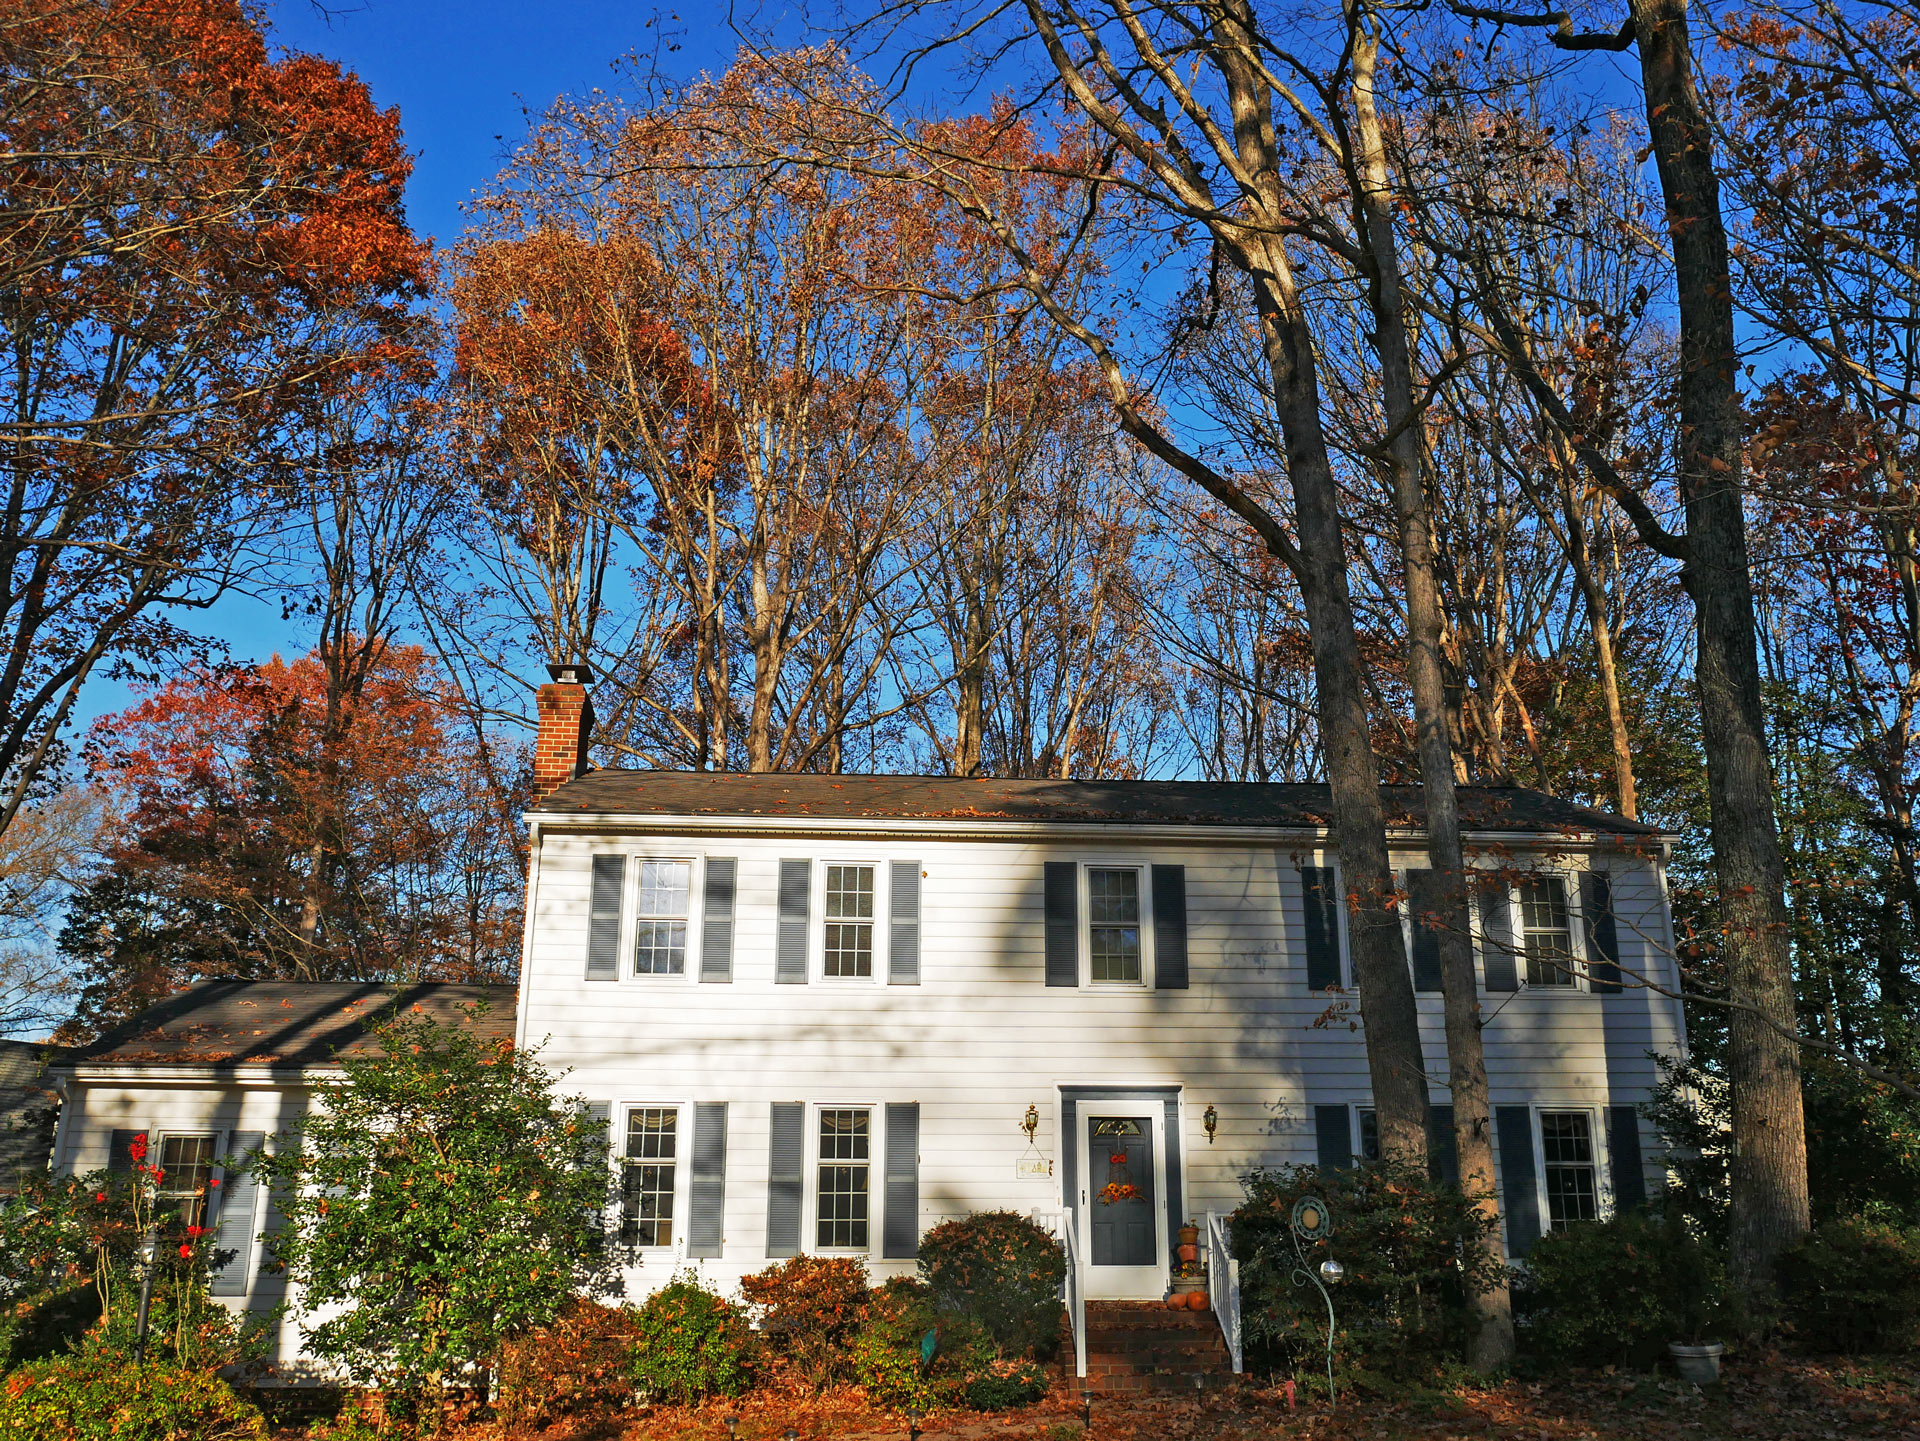 Home during fall surrounded by trees and bushes in Richmond, VA